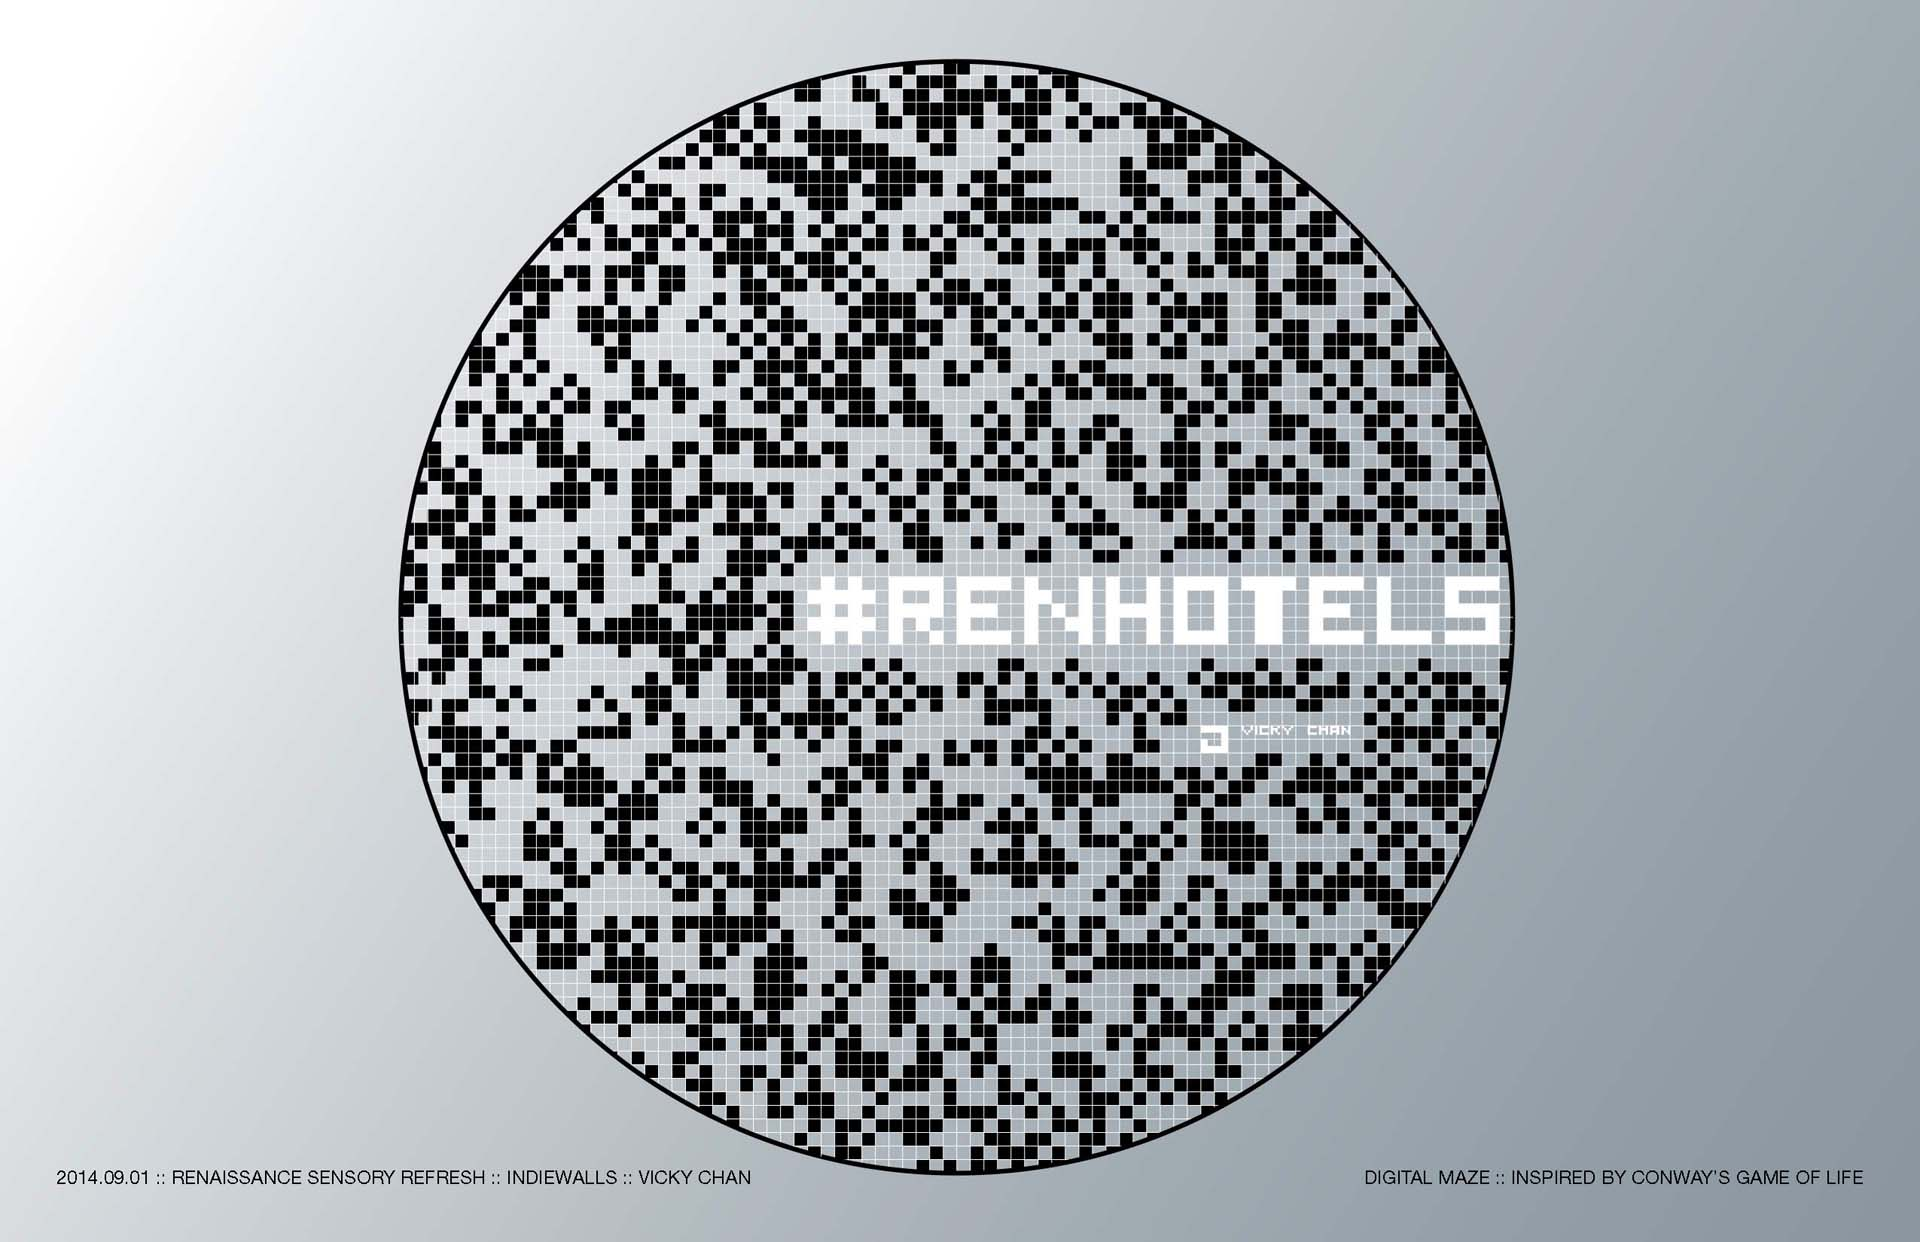 renhotels, renaissance hotel, branding, art, typography, architecture, print, 3d type, wireframe, vicky chan, architecture